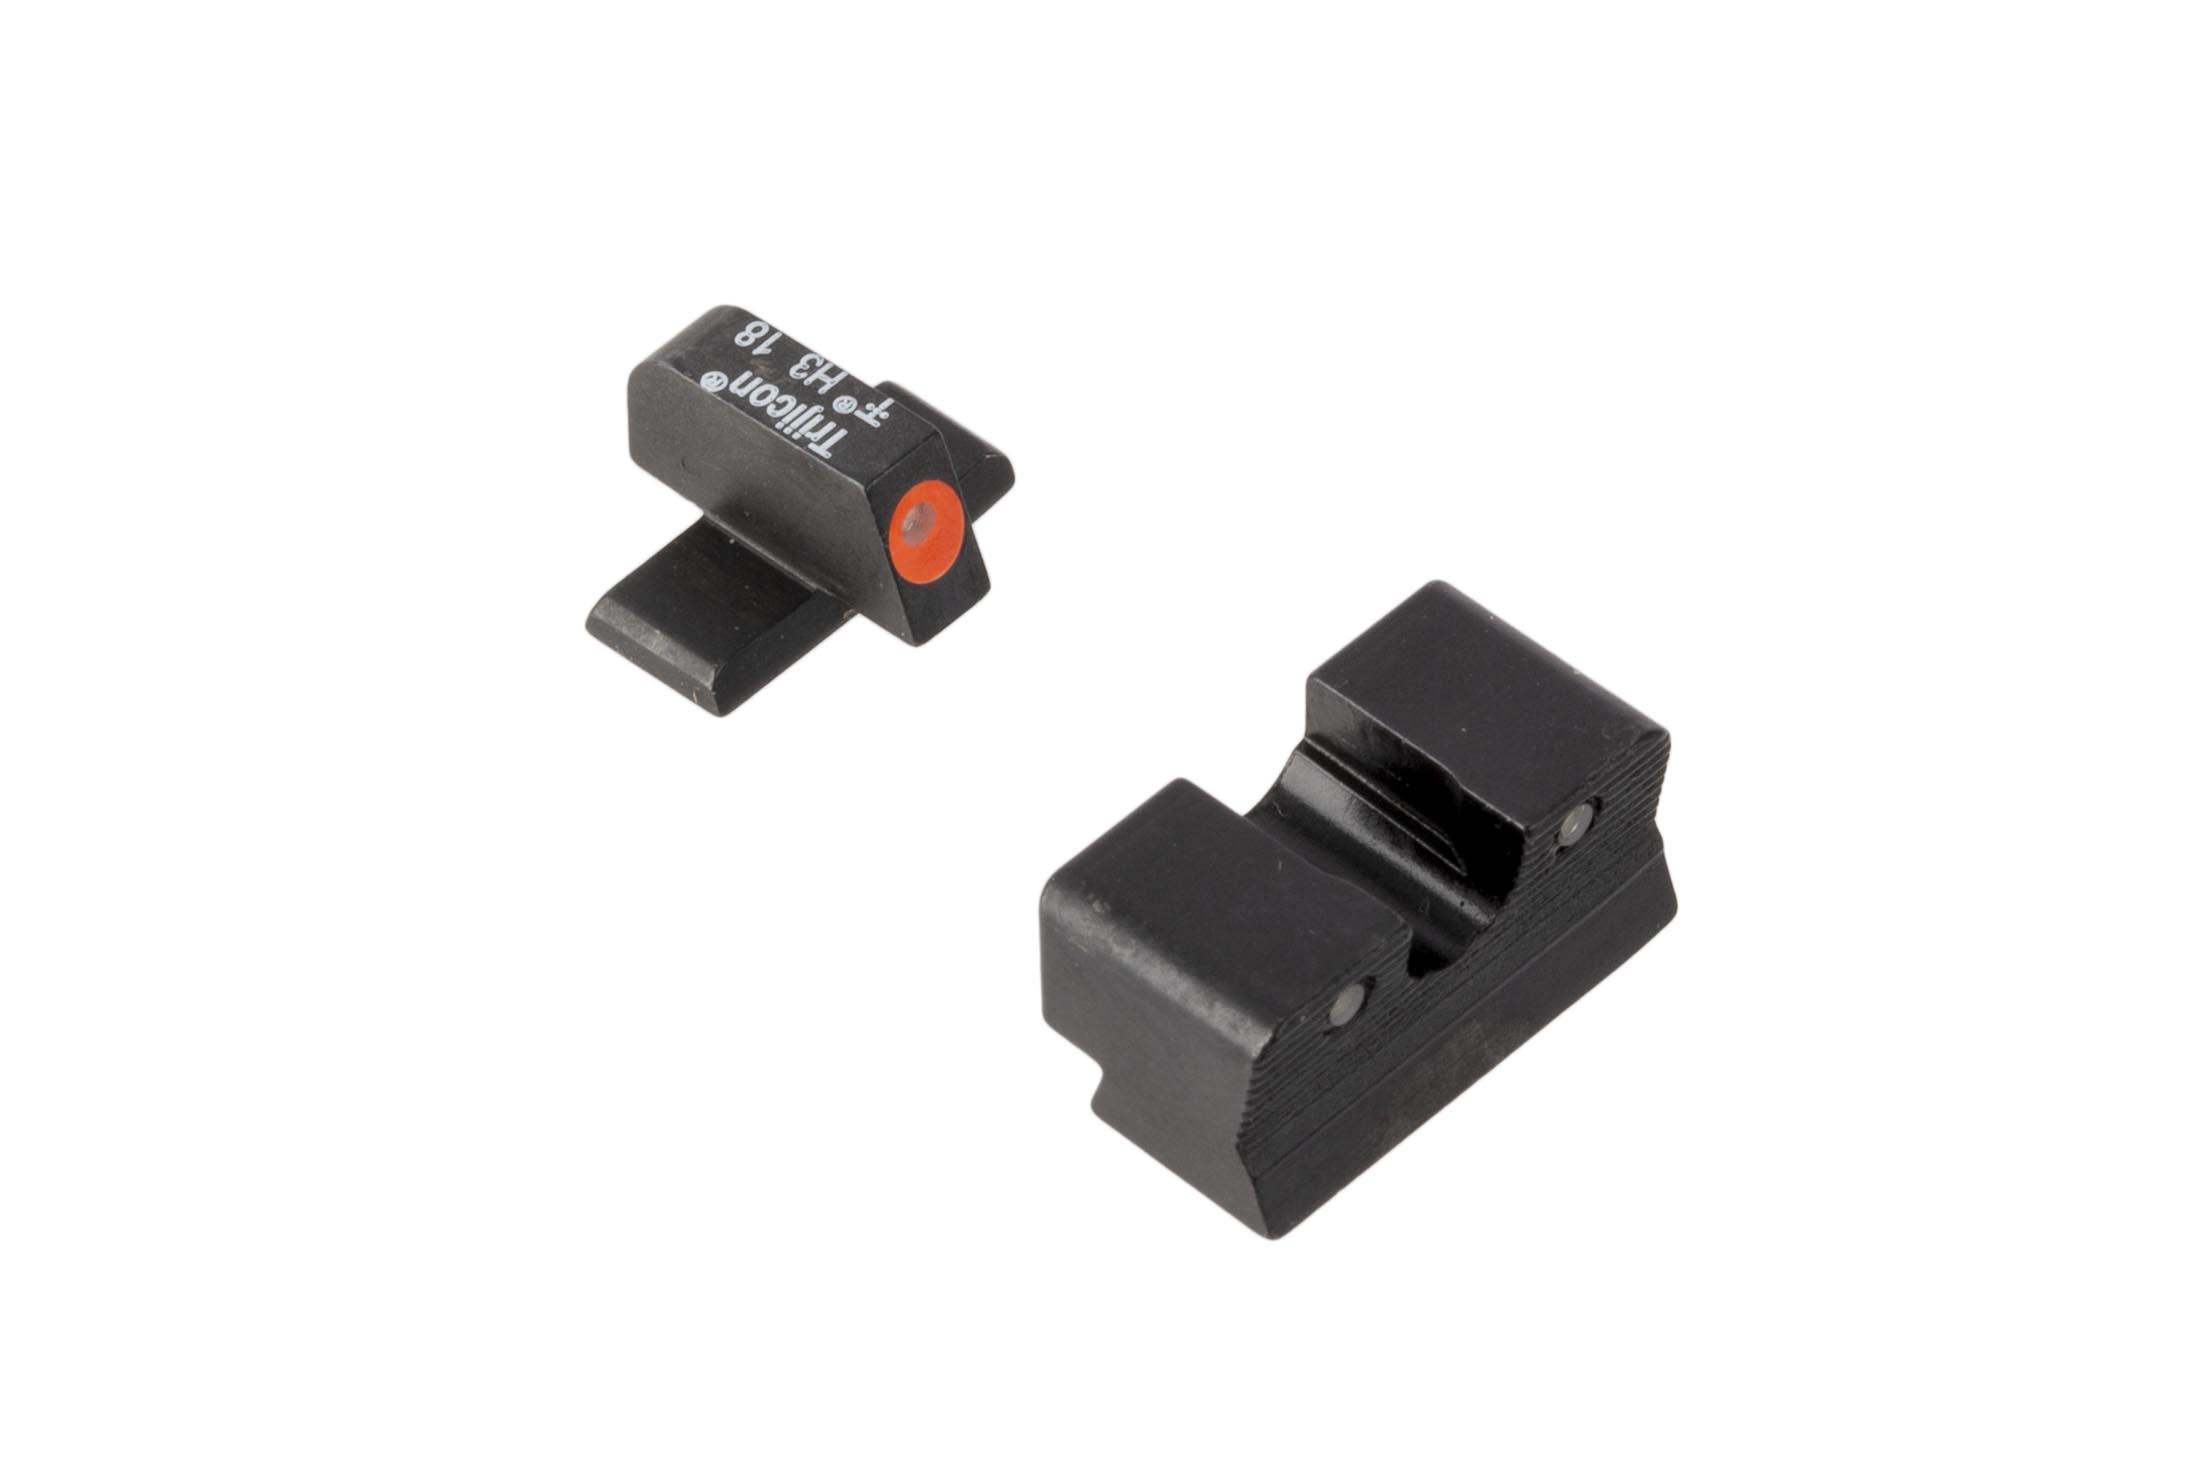 Trijicon HD XR Springfield XDs night sights feature a blacked out rear sight with wide U-notch and hi-vis orange front sight with tritium inserts.